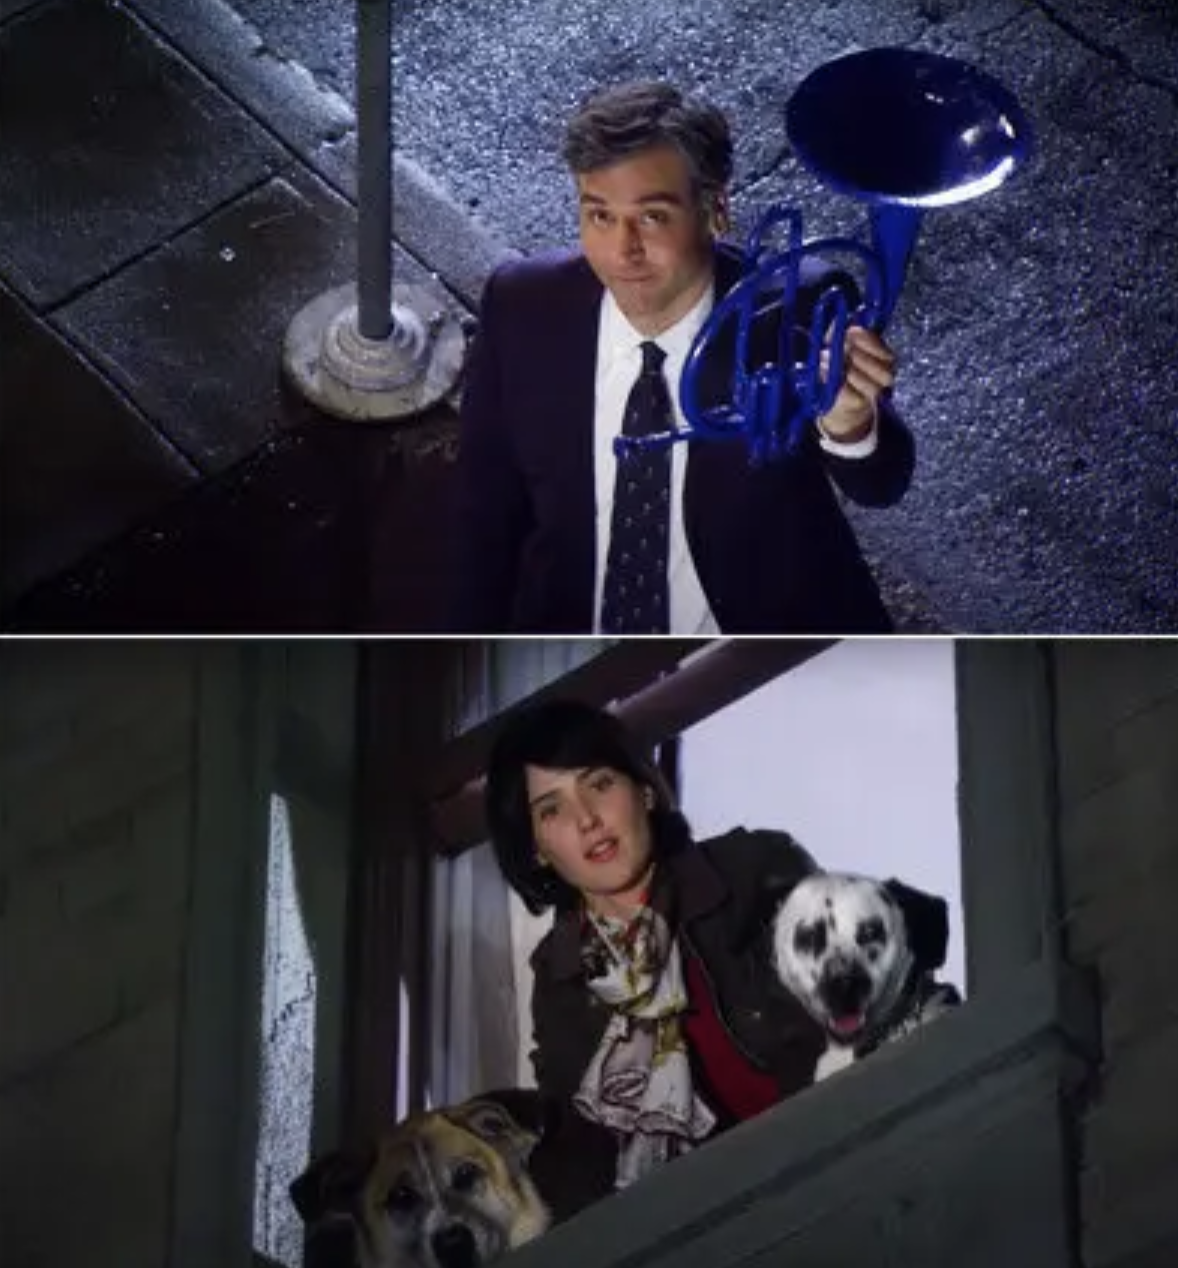 Ted holding a french horn outside Robin's window as she looks out with her dogs